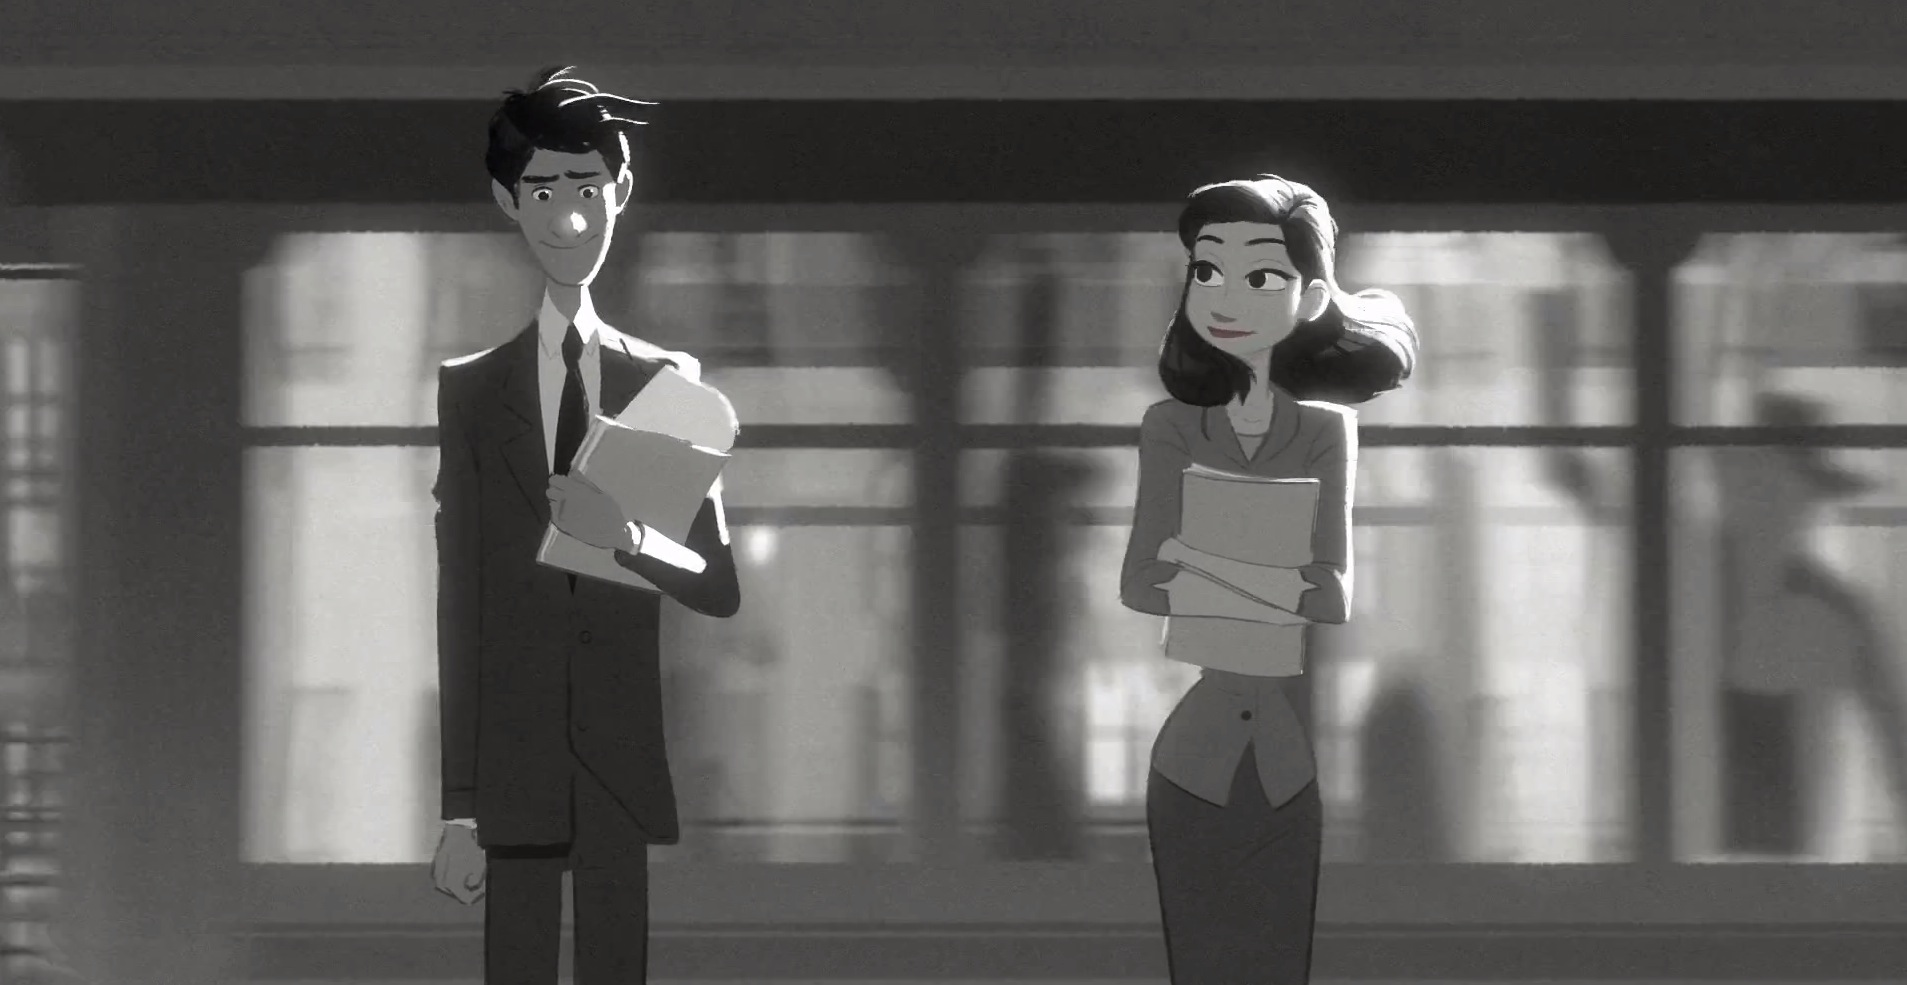 https://i2.wp.com/www.fubiz.net/wp-content/uploads/2013/01/Paperman9.jpg